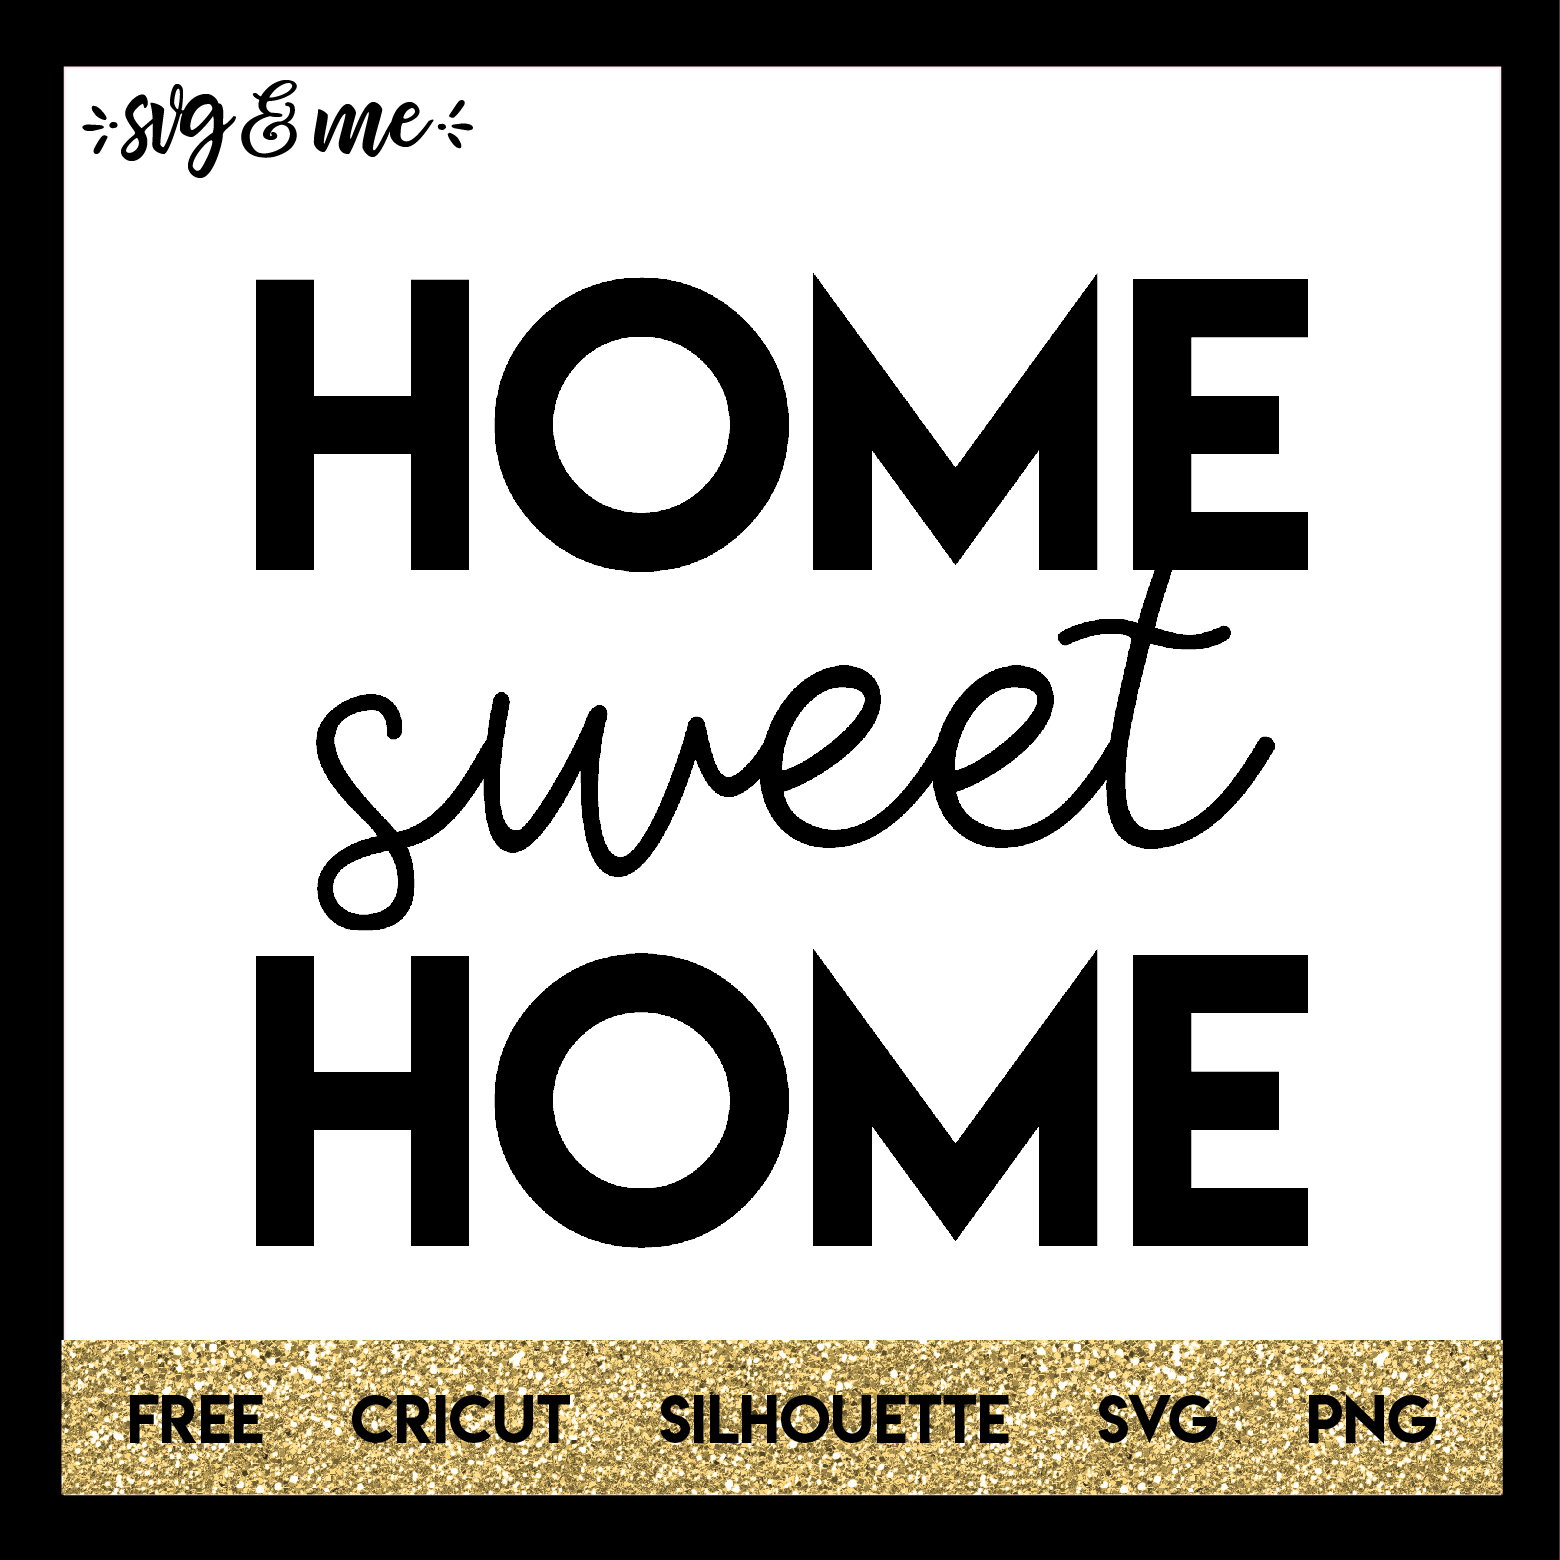 FREE SVG CUT FILE for Cricut, Silhouette - Home Sweet Home Farmhouse